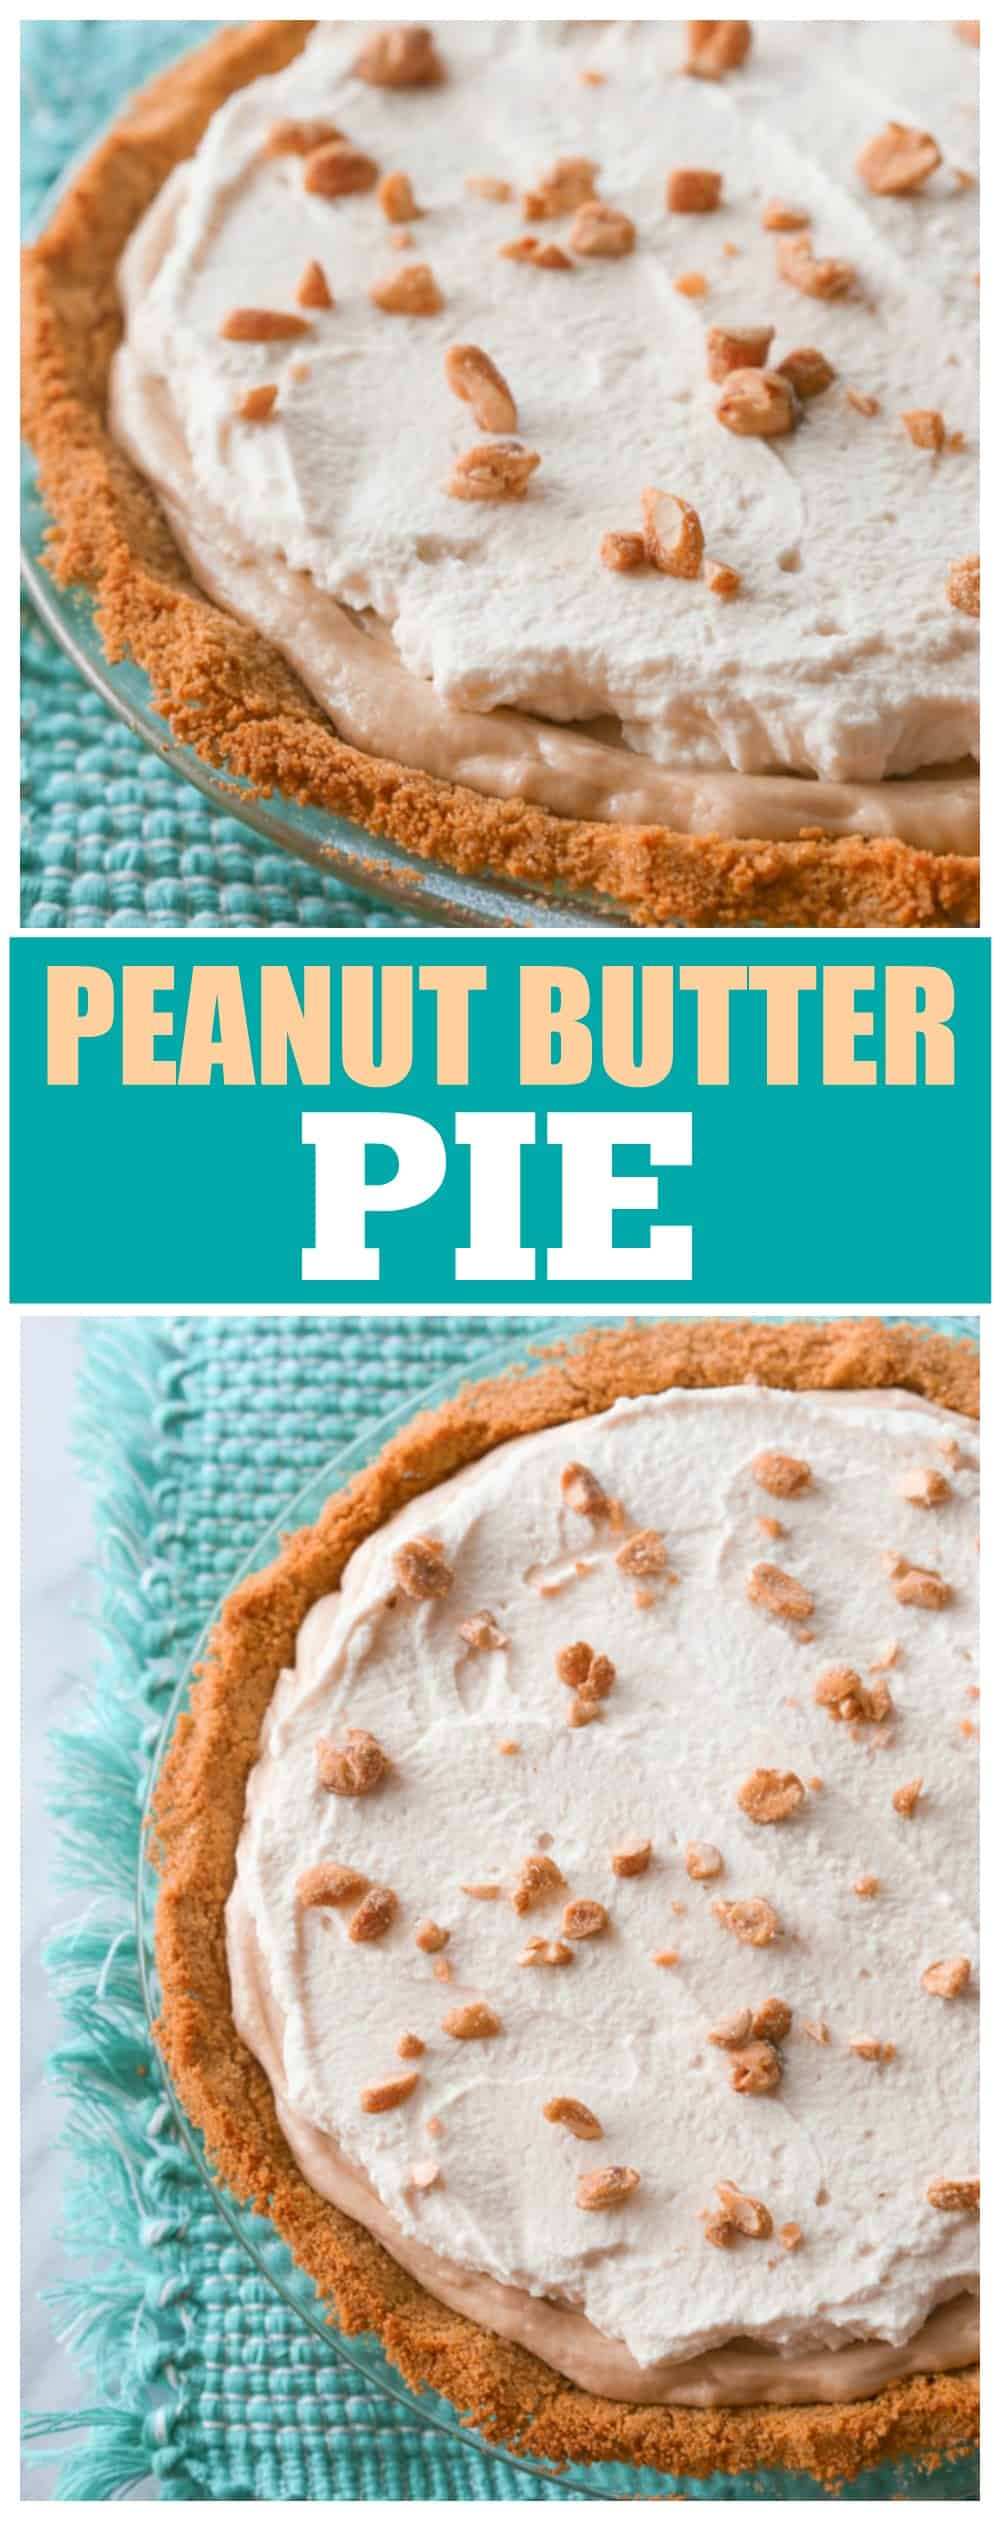 This Peanut Butter Pie recipe has a rich peanut butter flavor with honey roasted nuts and a graham cracker crust. the-girl-who-ate-everything.com